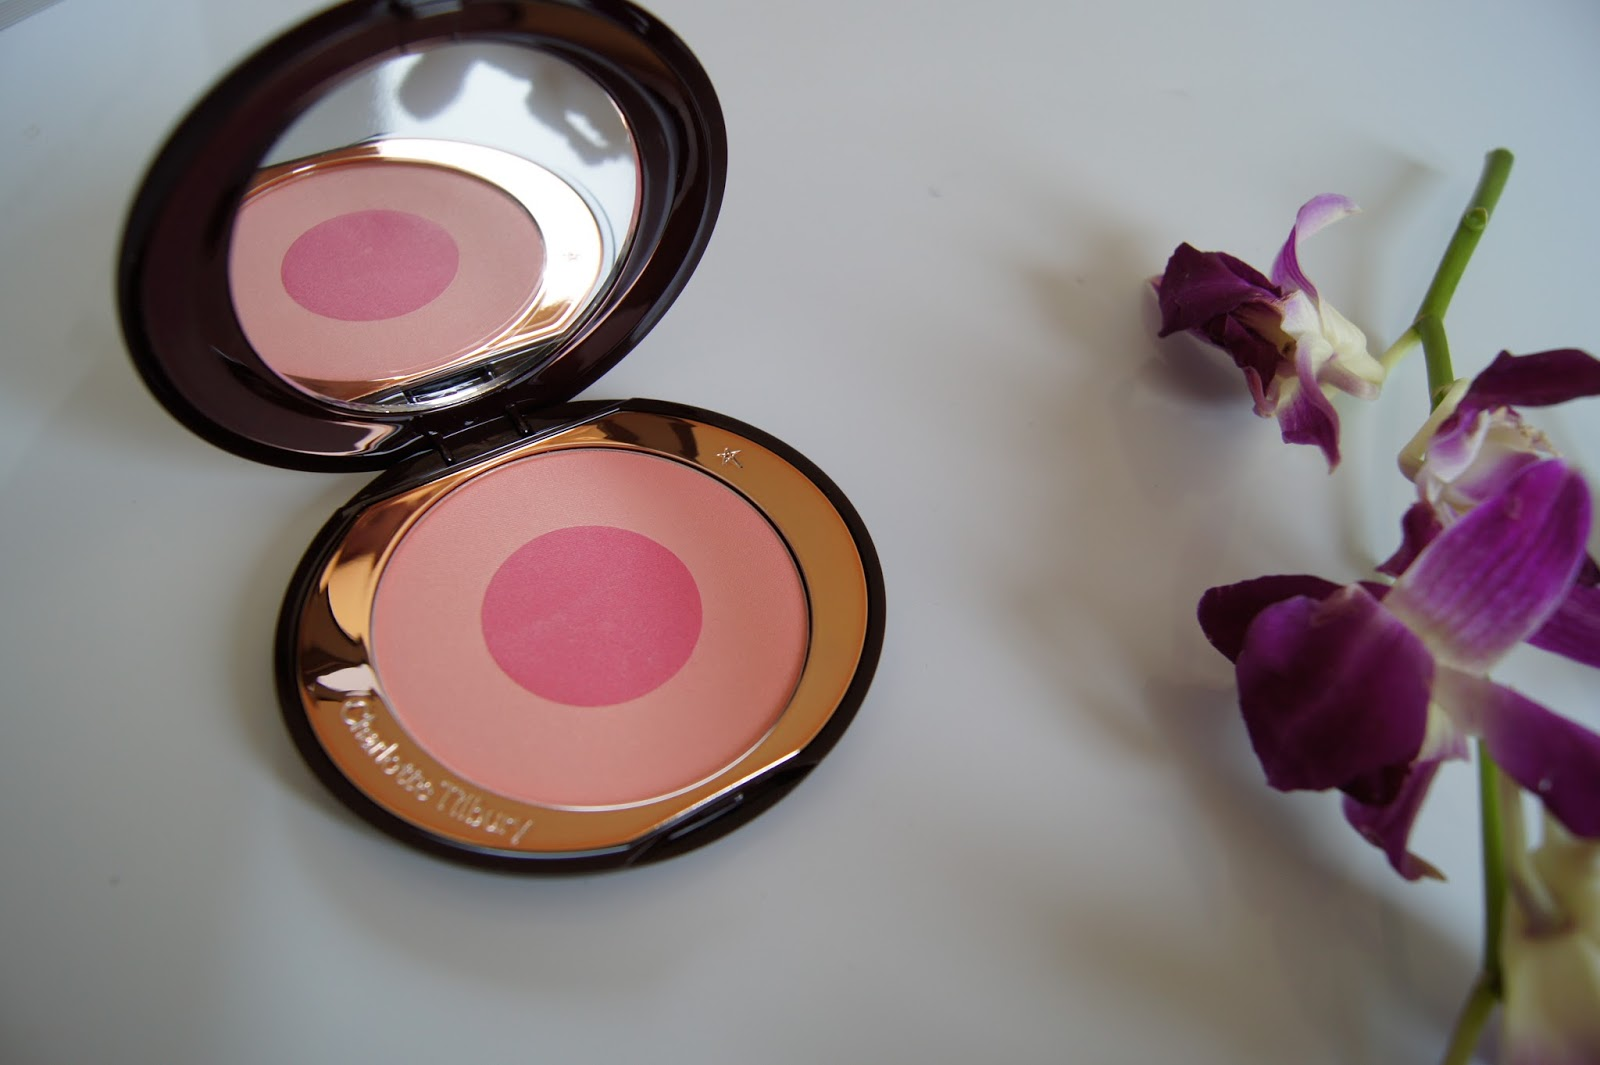 6 Shades Of Love - Love Is The Drug by Charlotte Tilbury #19